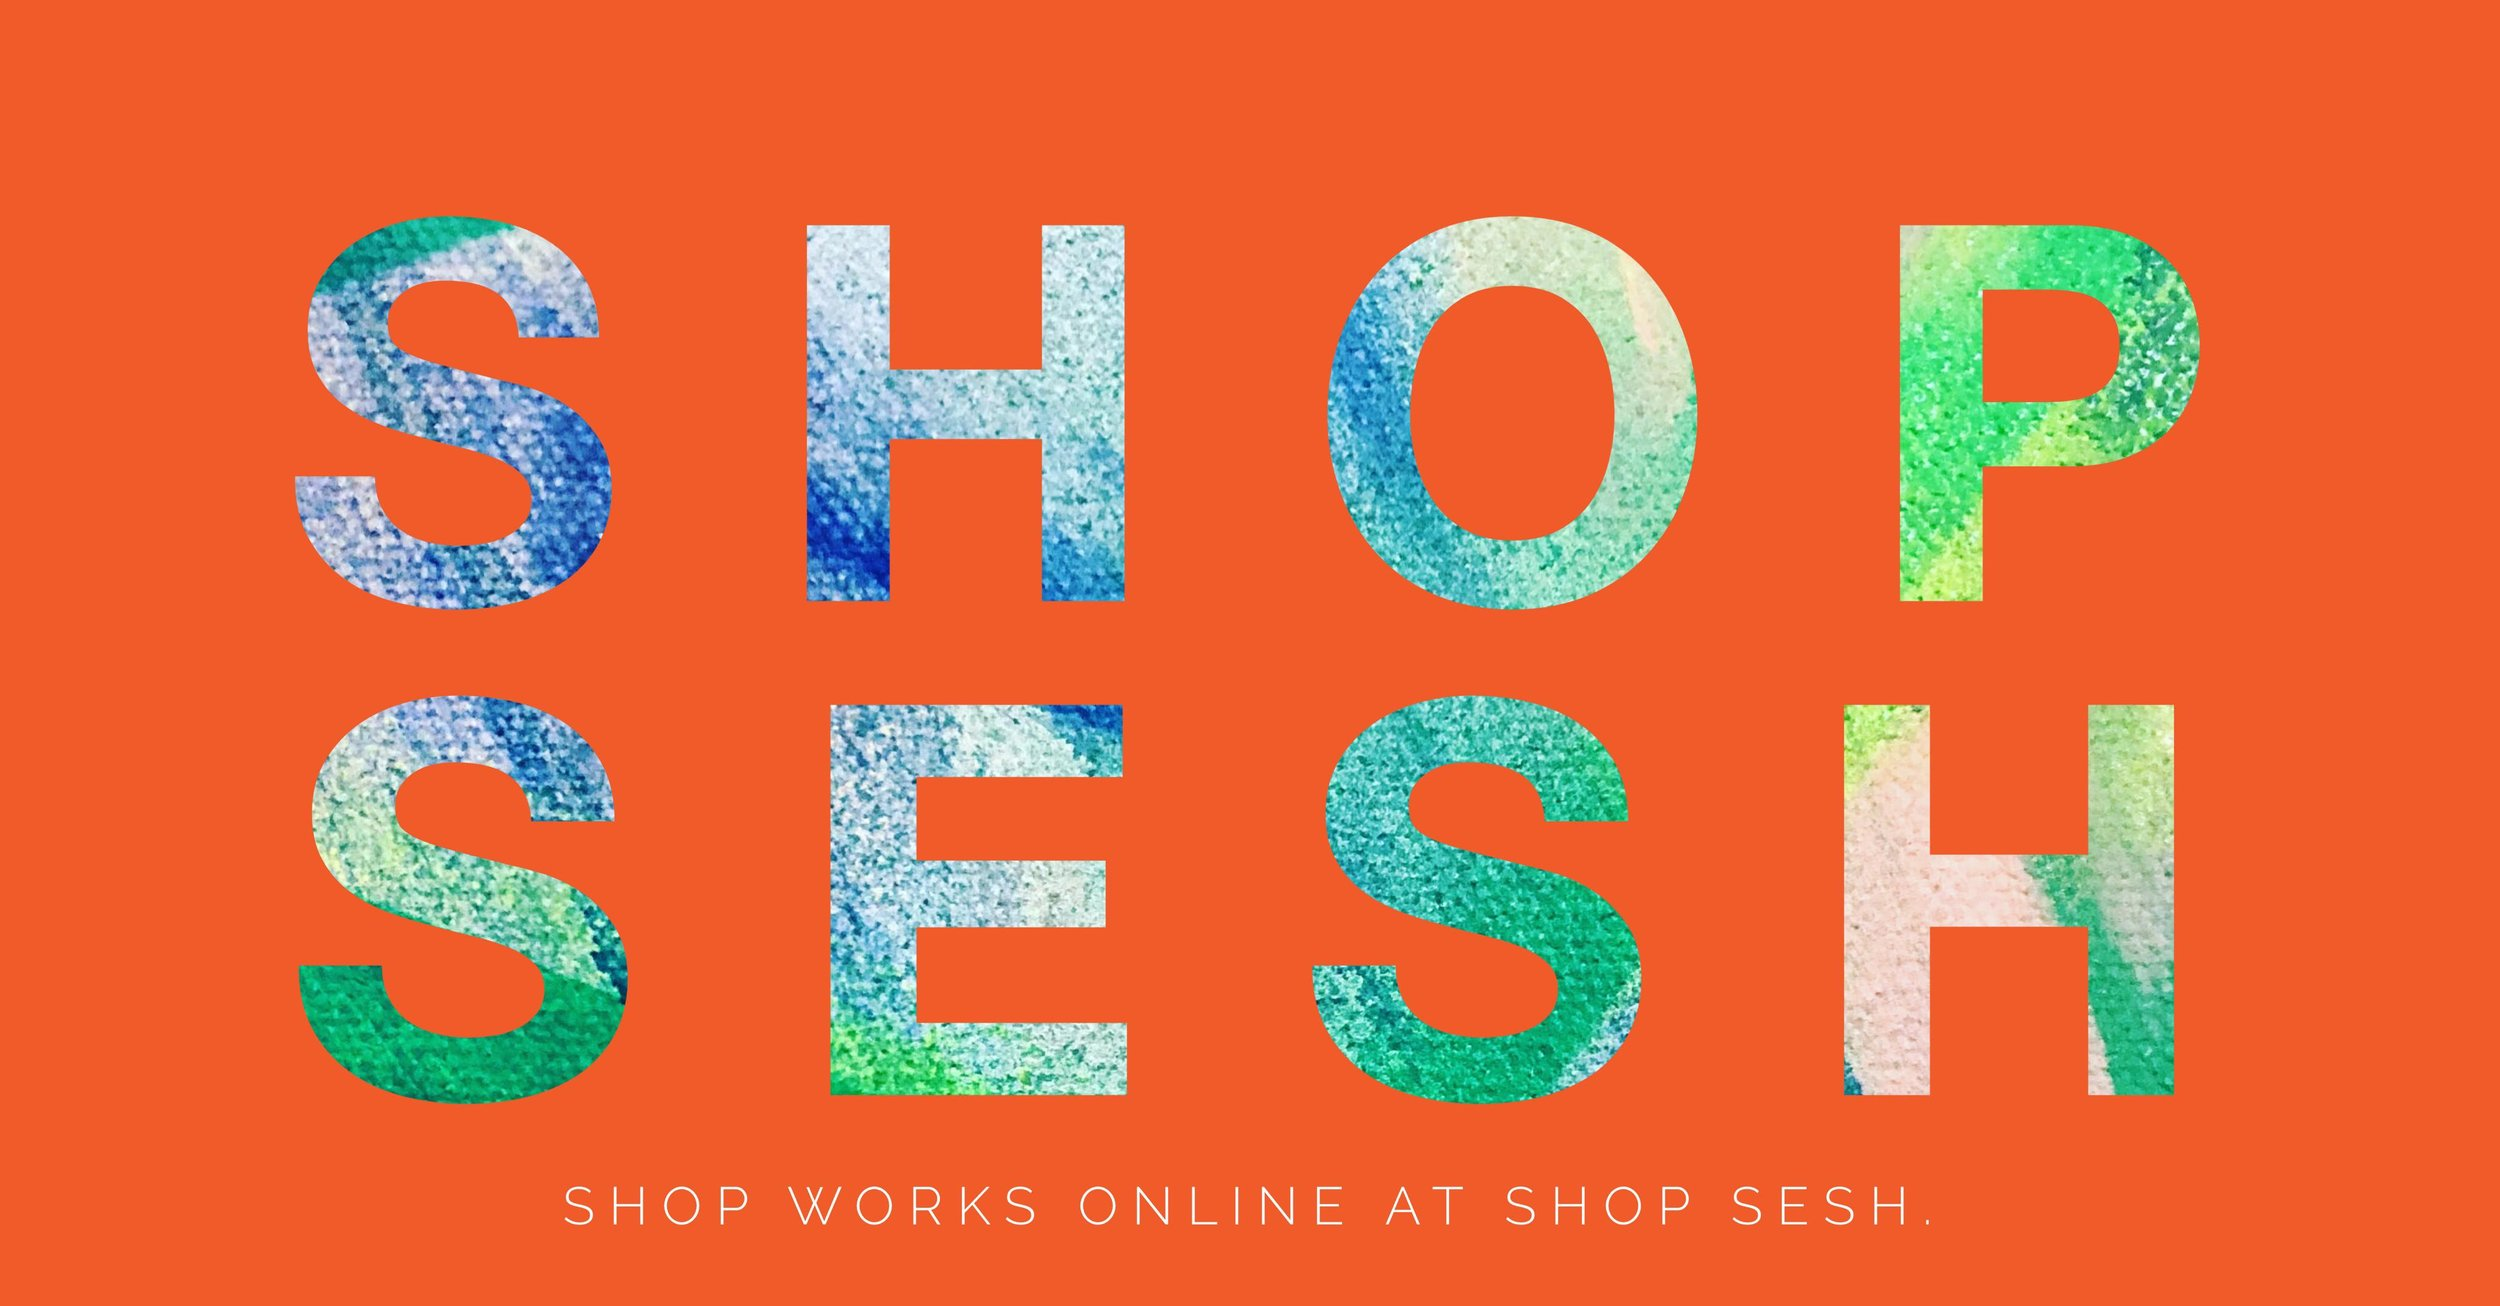 shopsesh_orange_banner.jpg